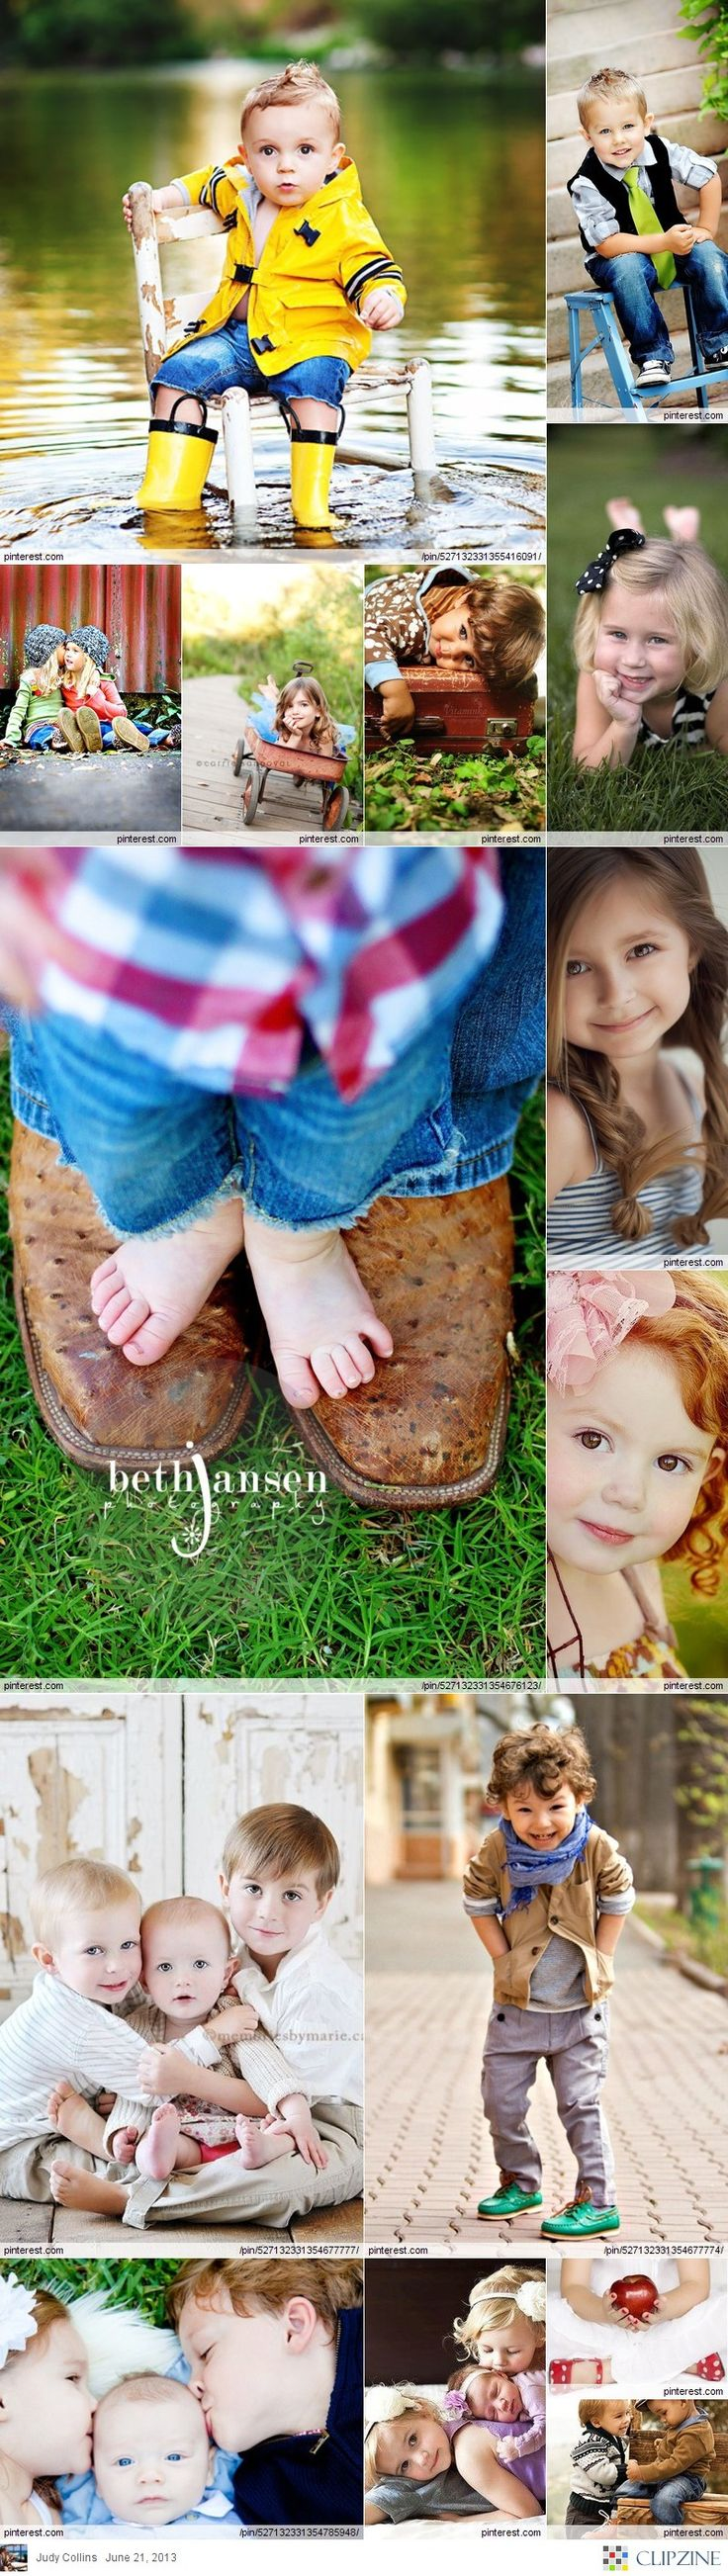 Children's Photography - cute poses and outfit ideas